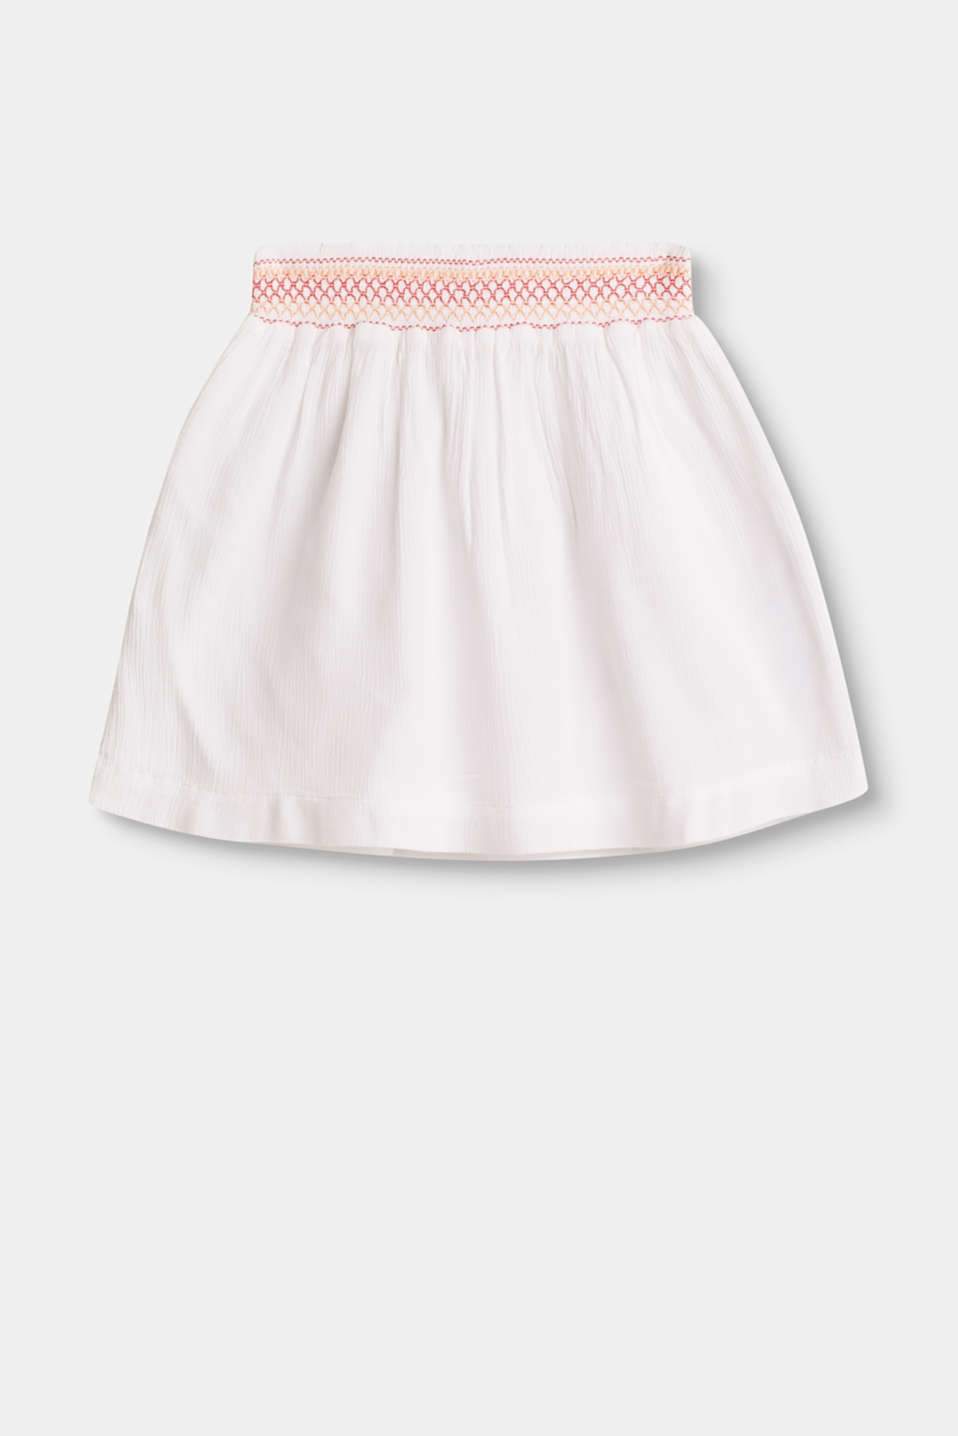 Soft skirt with an embroidered elasticated waistband